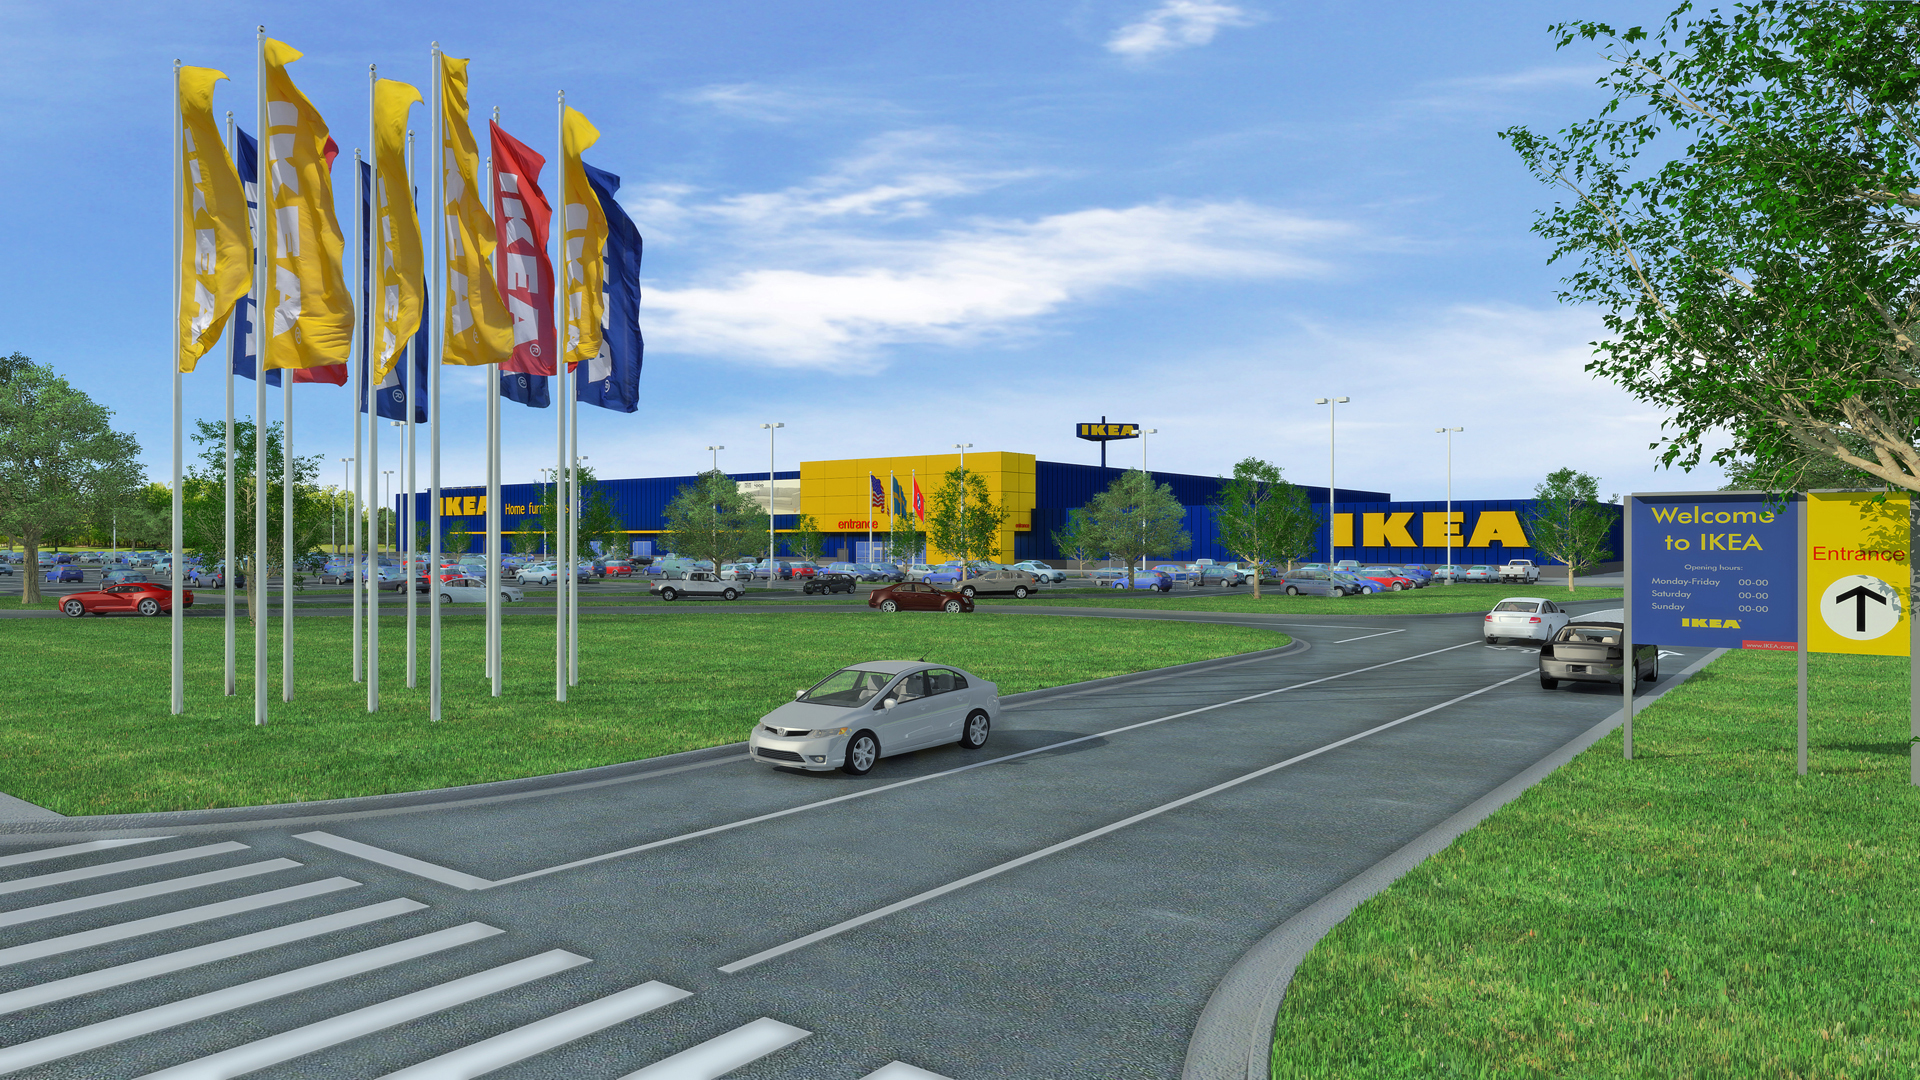 ikea proposes plans for opening a memphis store in fall 2016 as swedish retailer looks to expand. Black Bedroom Furniture Sets. Home Design Ideas